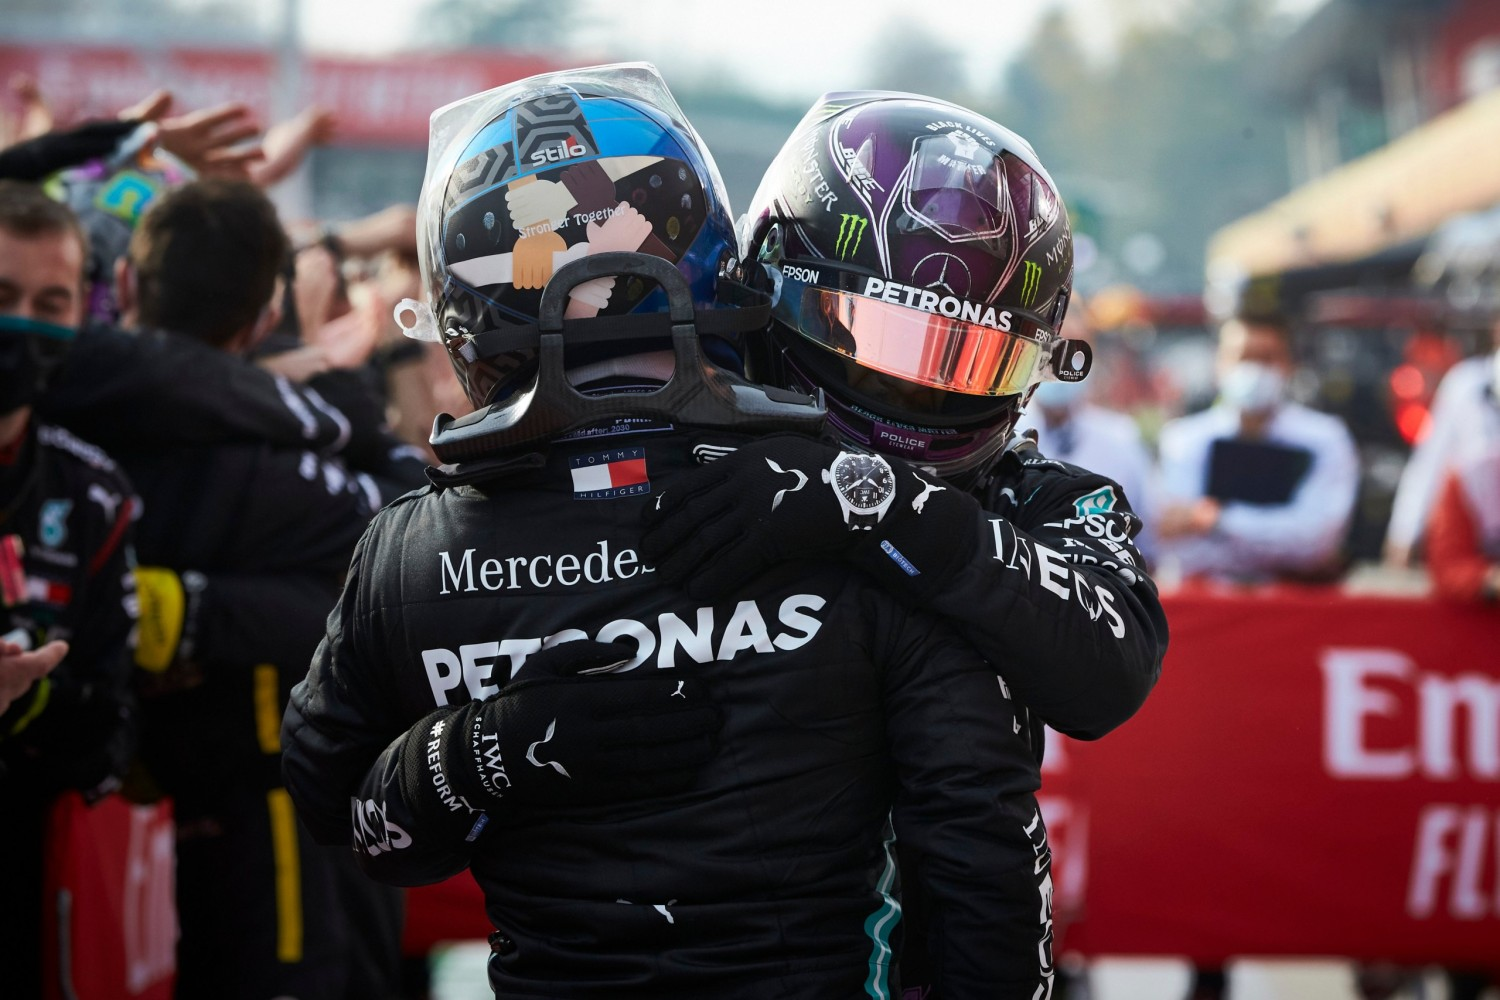 Hamilton: Not enough credit for 'incredibly fast' Bottas